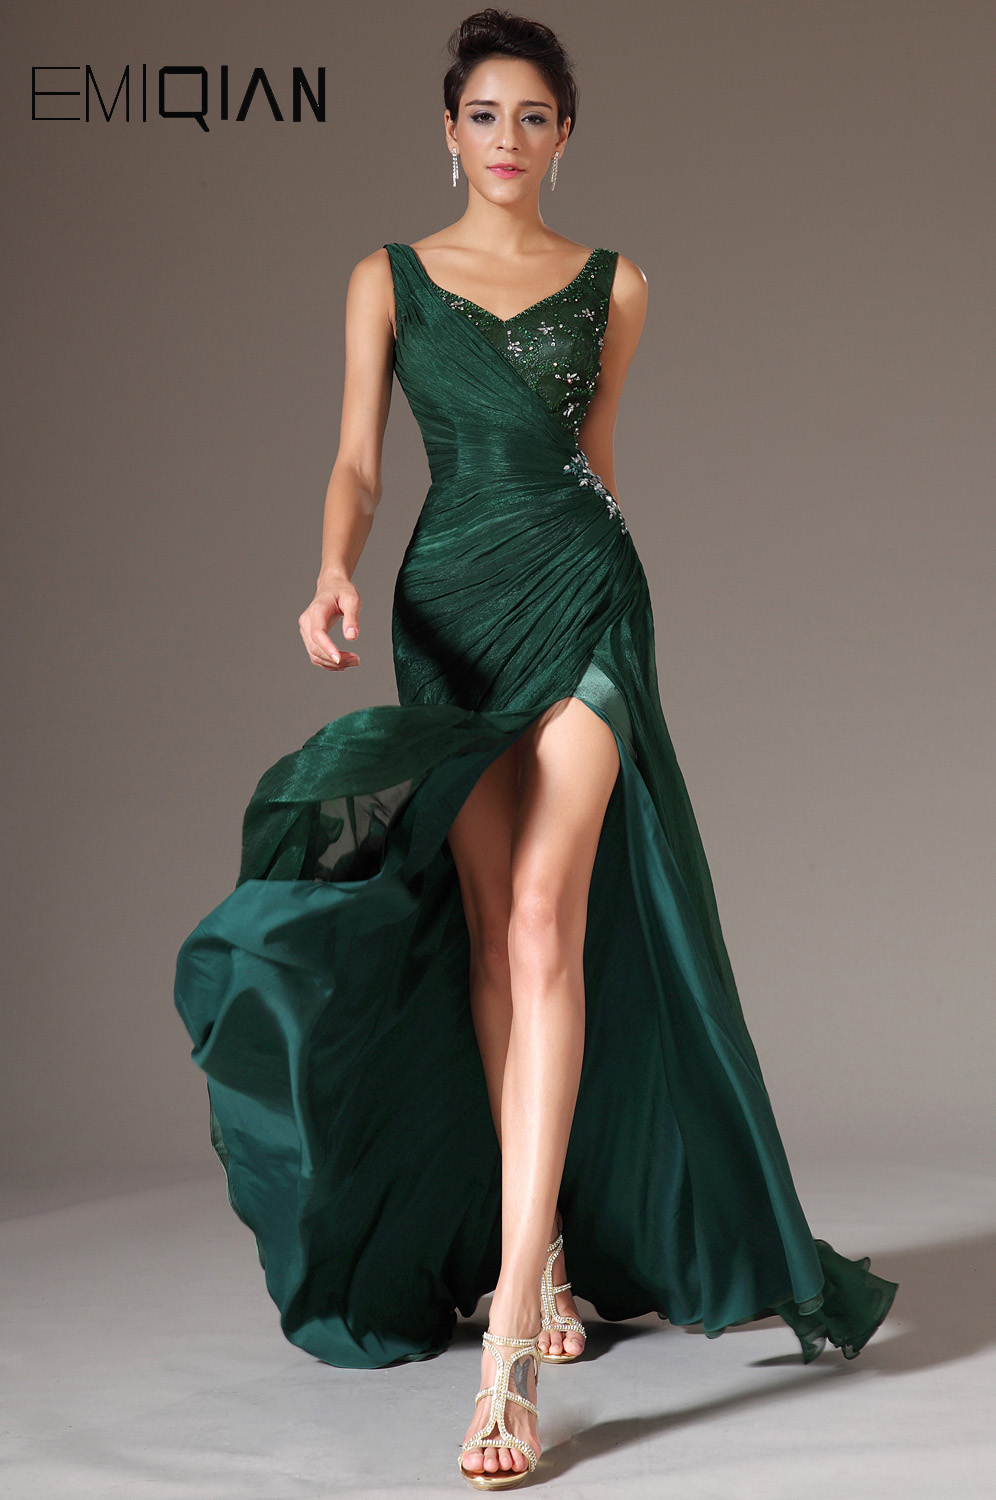 Tank Evening Gown,Mermaid Evening Gown,New V Neck Evening Dress, Green Chiffon Formal Evening Dress